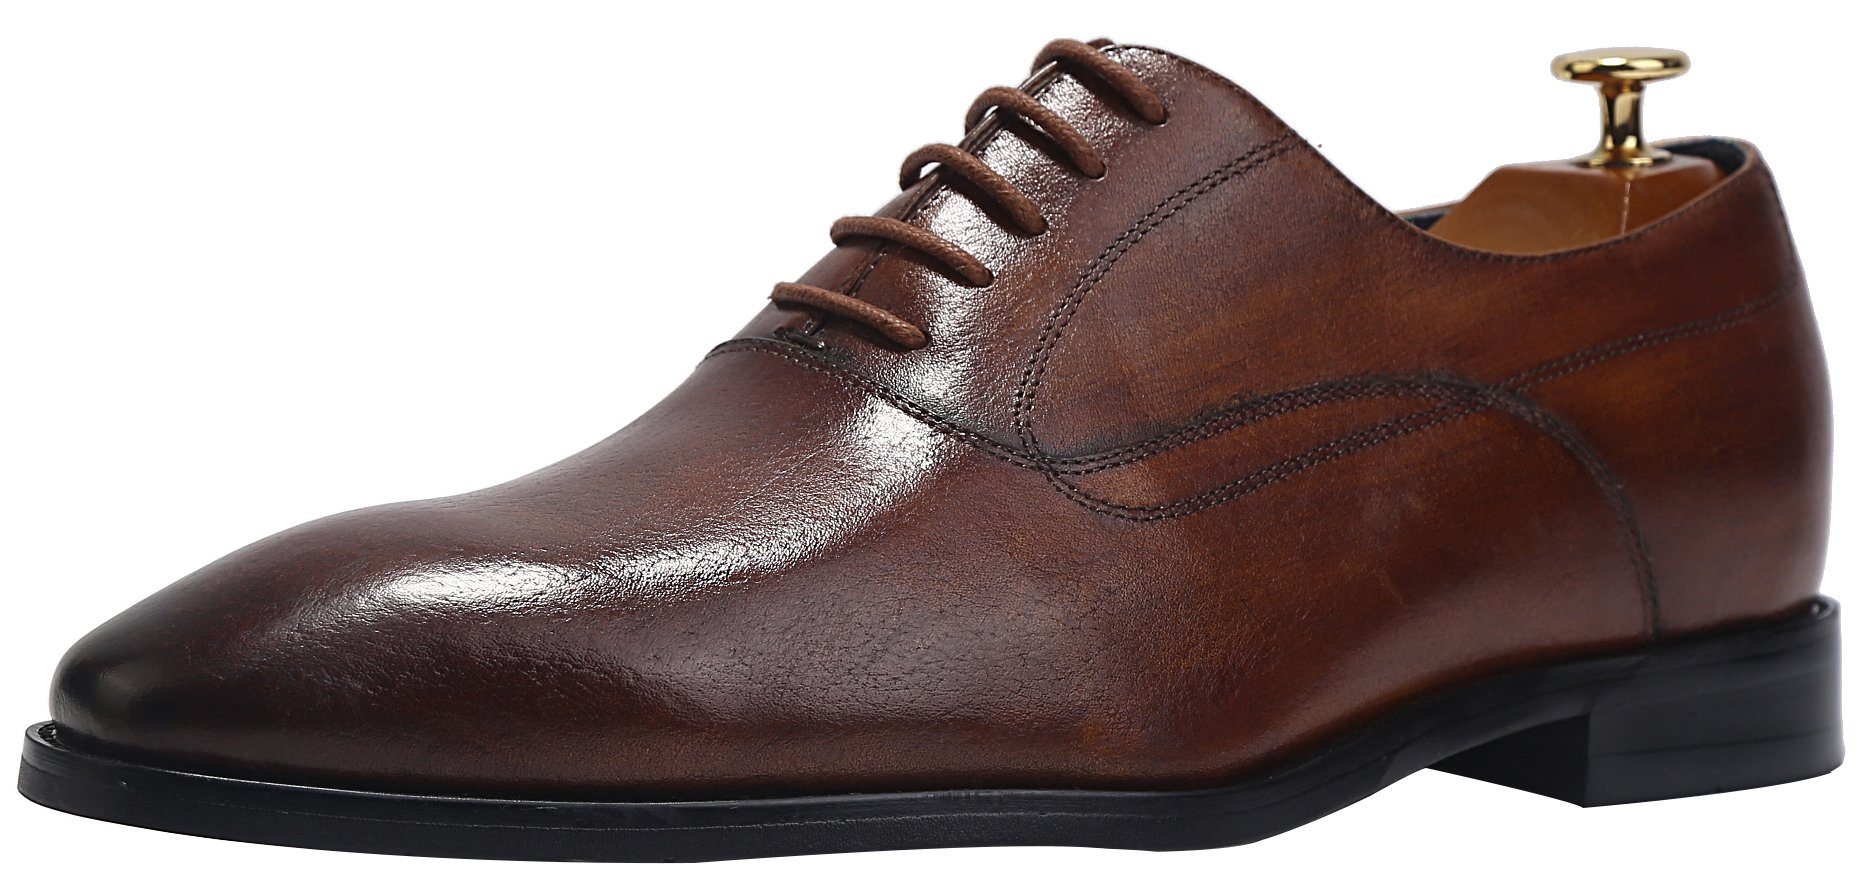 ELANROMAN Men's Business Dress Oxford Shoes Luxury Italian Handmade Derby Shoes Maroon(US 11 EU 45 Foot Length 315.98mm)